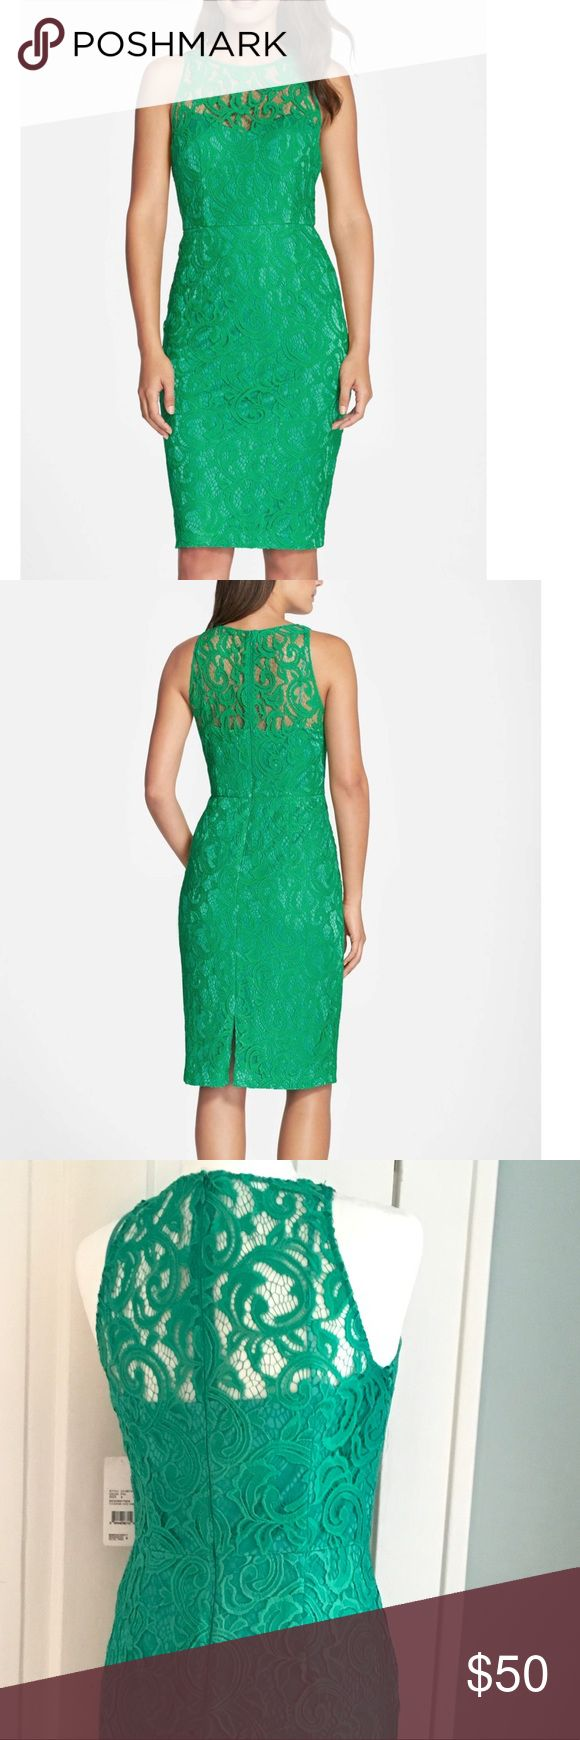 Green Lace Dress:  Hailey Adrianna Papel Feminine and sexy this gorgeous never worn dress features perfect green lace elegantly presented over a tonal aqua sheath beneath-completely lined illusion yolk Adrianna Papell perfect for a Wedding Season Dress! Adrianna Papell Dresses Midi